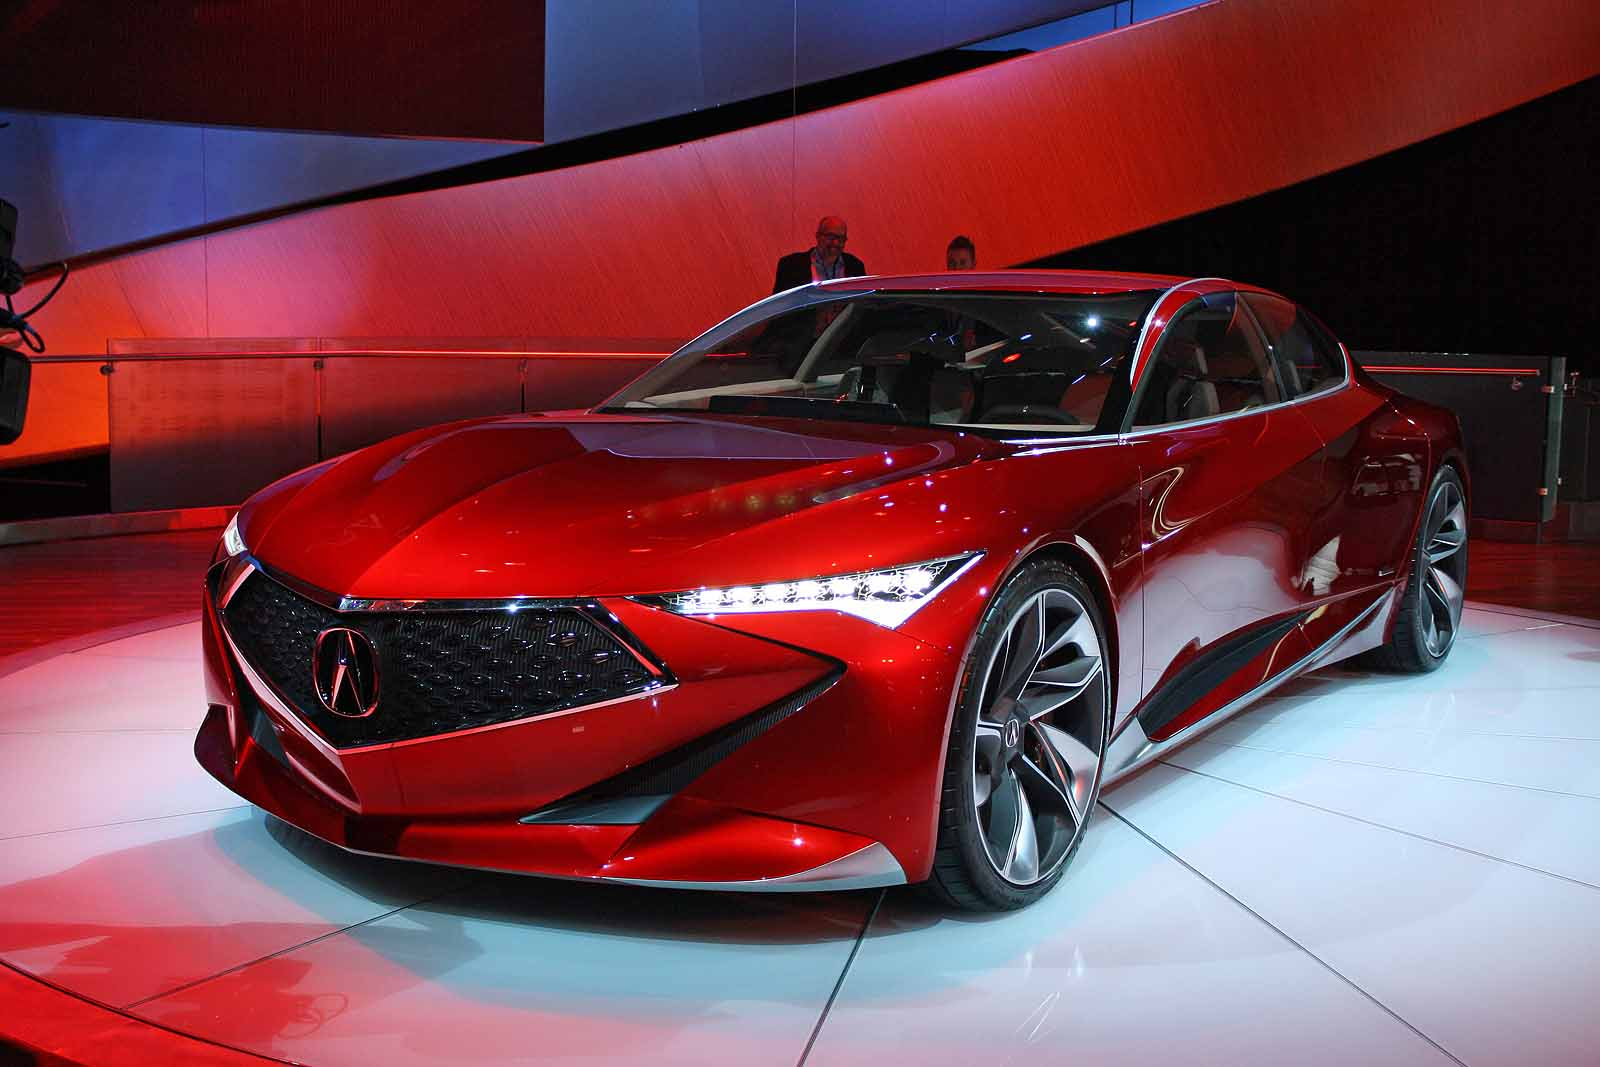 Acura Precision Concept Looks Even Hotter Than The Nsx